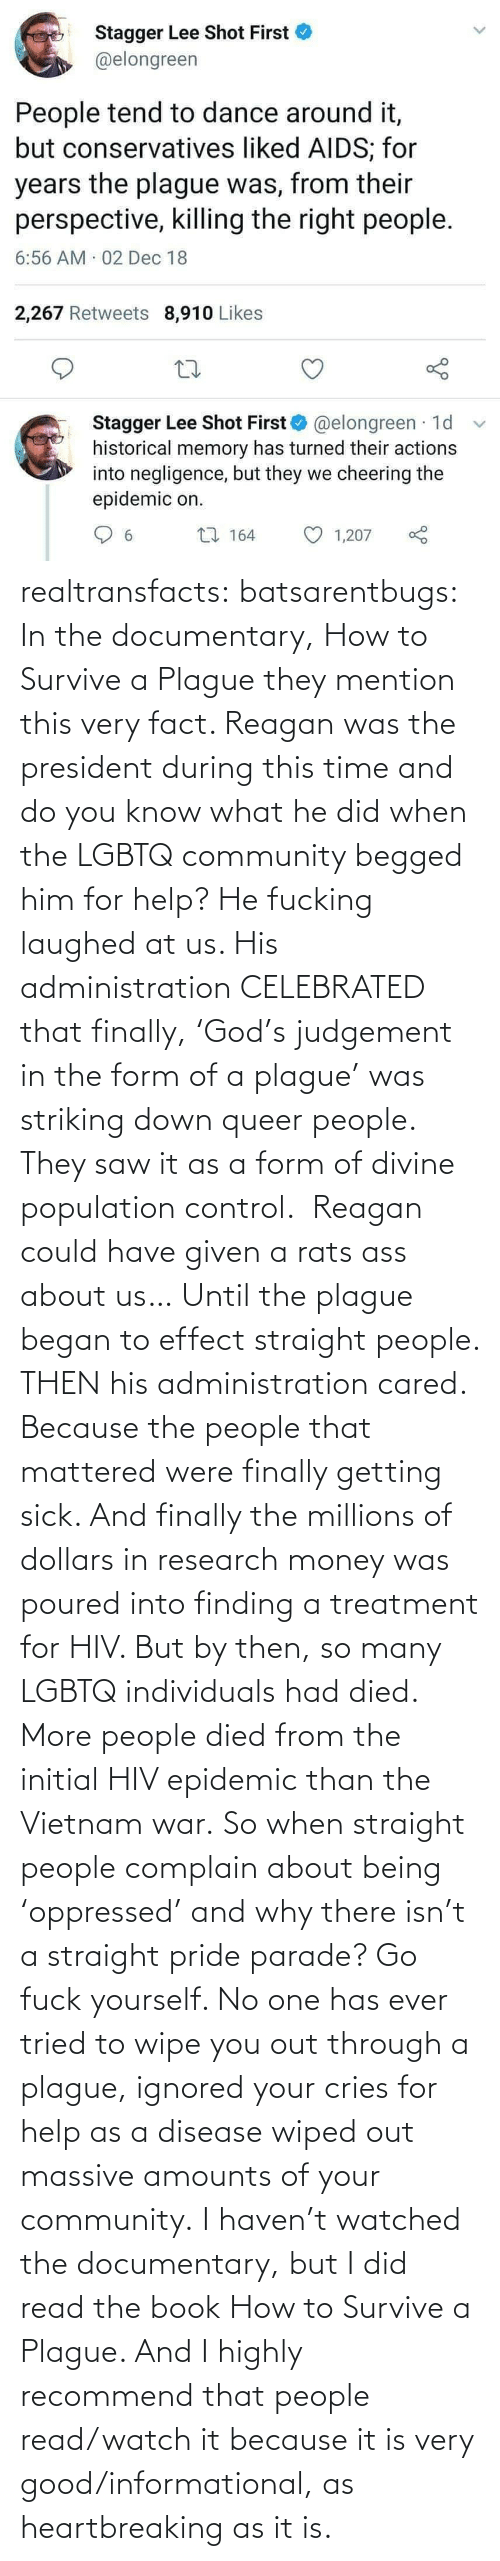 read: Stagger Lee Shot First  @elongreen  People tend to dance around it,  but conservatives liked AIDS; for  years the plague was, from their  perspective, killing the right people.  6:56 AM 02 Dec 18  2,267 Retweets 8,910 Likes  Stagger Lee Shot First O @elongreen · 1d  historical memory has turned their actions  into negligence, but they we cheering the  epidemic on.  27 164  1,207  6. realtransfacts:  batsarentbugs:  In the documentary, How to Survive a Plague they mention this very fact. Reagan was the president during this time and do you know what he did when the LGBTQ community begged him for help? He fucking laughed at us. His administration CELEBRATED that finally, 'God's judgement in the form of a plague' was striking down queer people.  They saw it as a form of divine population control.  Reagan could have given a rats ass about us… Until the plague began to effect straight people. THEN his administration cared. Because the people that mattered were finally getting sick. And finally the millions of dollars in research money was poured into finding a treatment for HIV. But by then, so many LGBTQ individuals had died.  More people died from the initial HIV epidemic than the Vietnam war. So when straight people complain about being 'oppressed' and why there isn't a straight pride parade? Go fuck yourself. No one has ever tried to wipe you out through a plague, ignored your cries for help as a disease wiped out massive amounts of your community.  I haven't watched the documentary, but I did read the book  How to Survive a Plague. And I highly recommend that people read/watch it because it is very good/informational, as heartbreaking as it is.